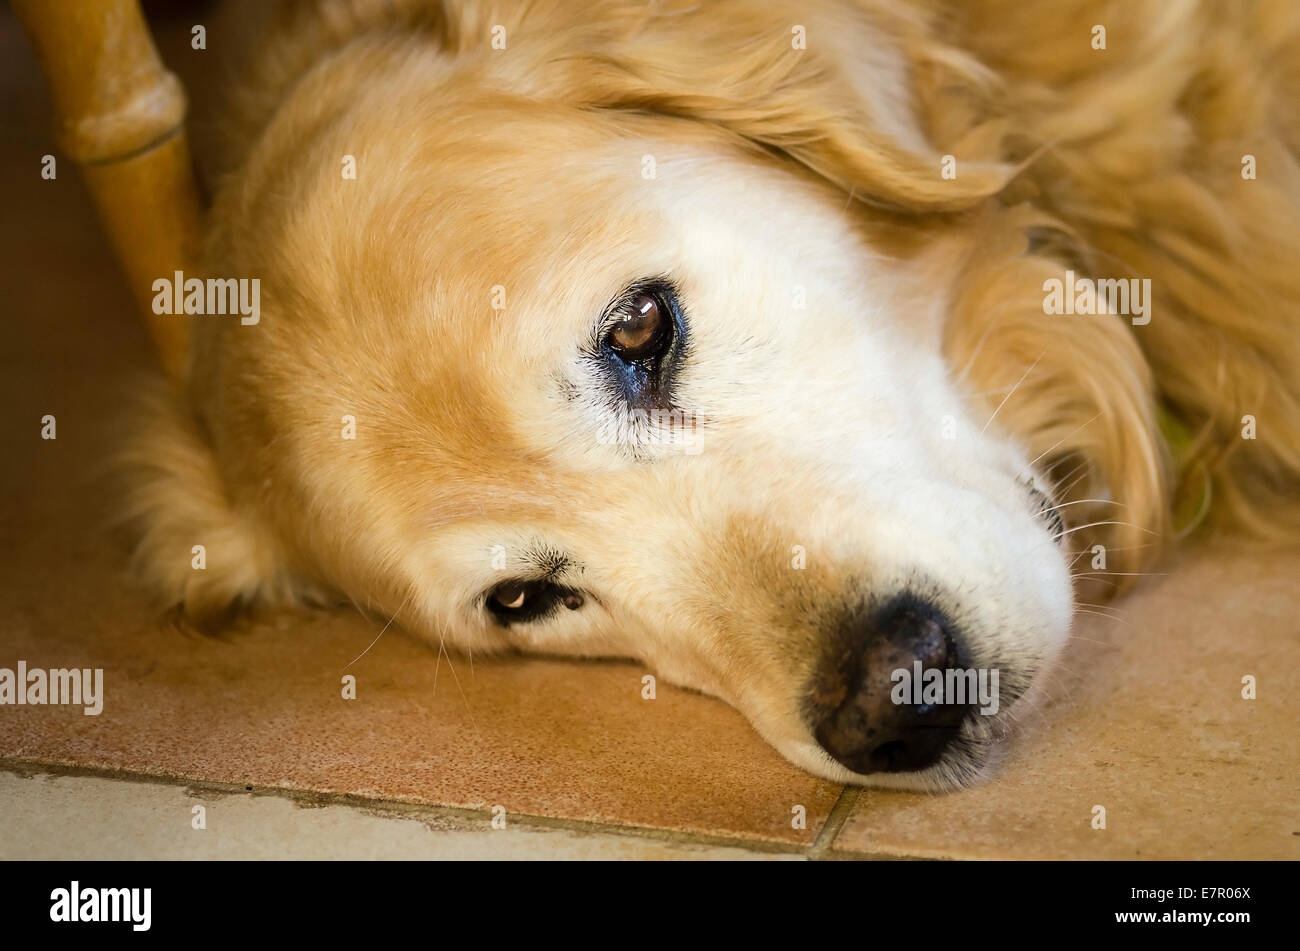 A tired dog resting on a tiled floor indoors - DO NOT DISTURB - Stock Image